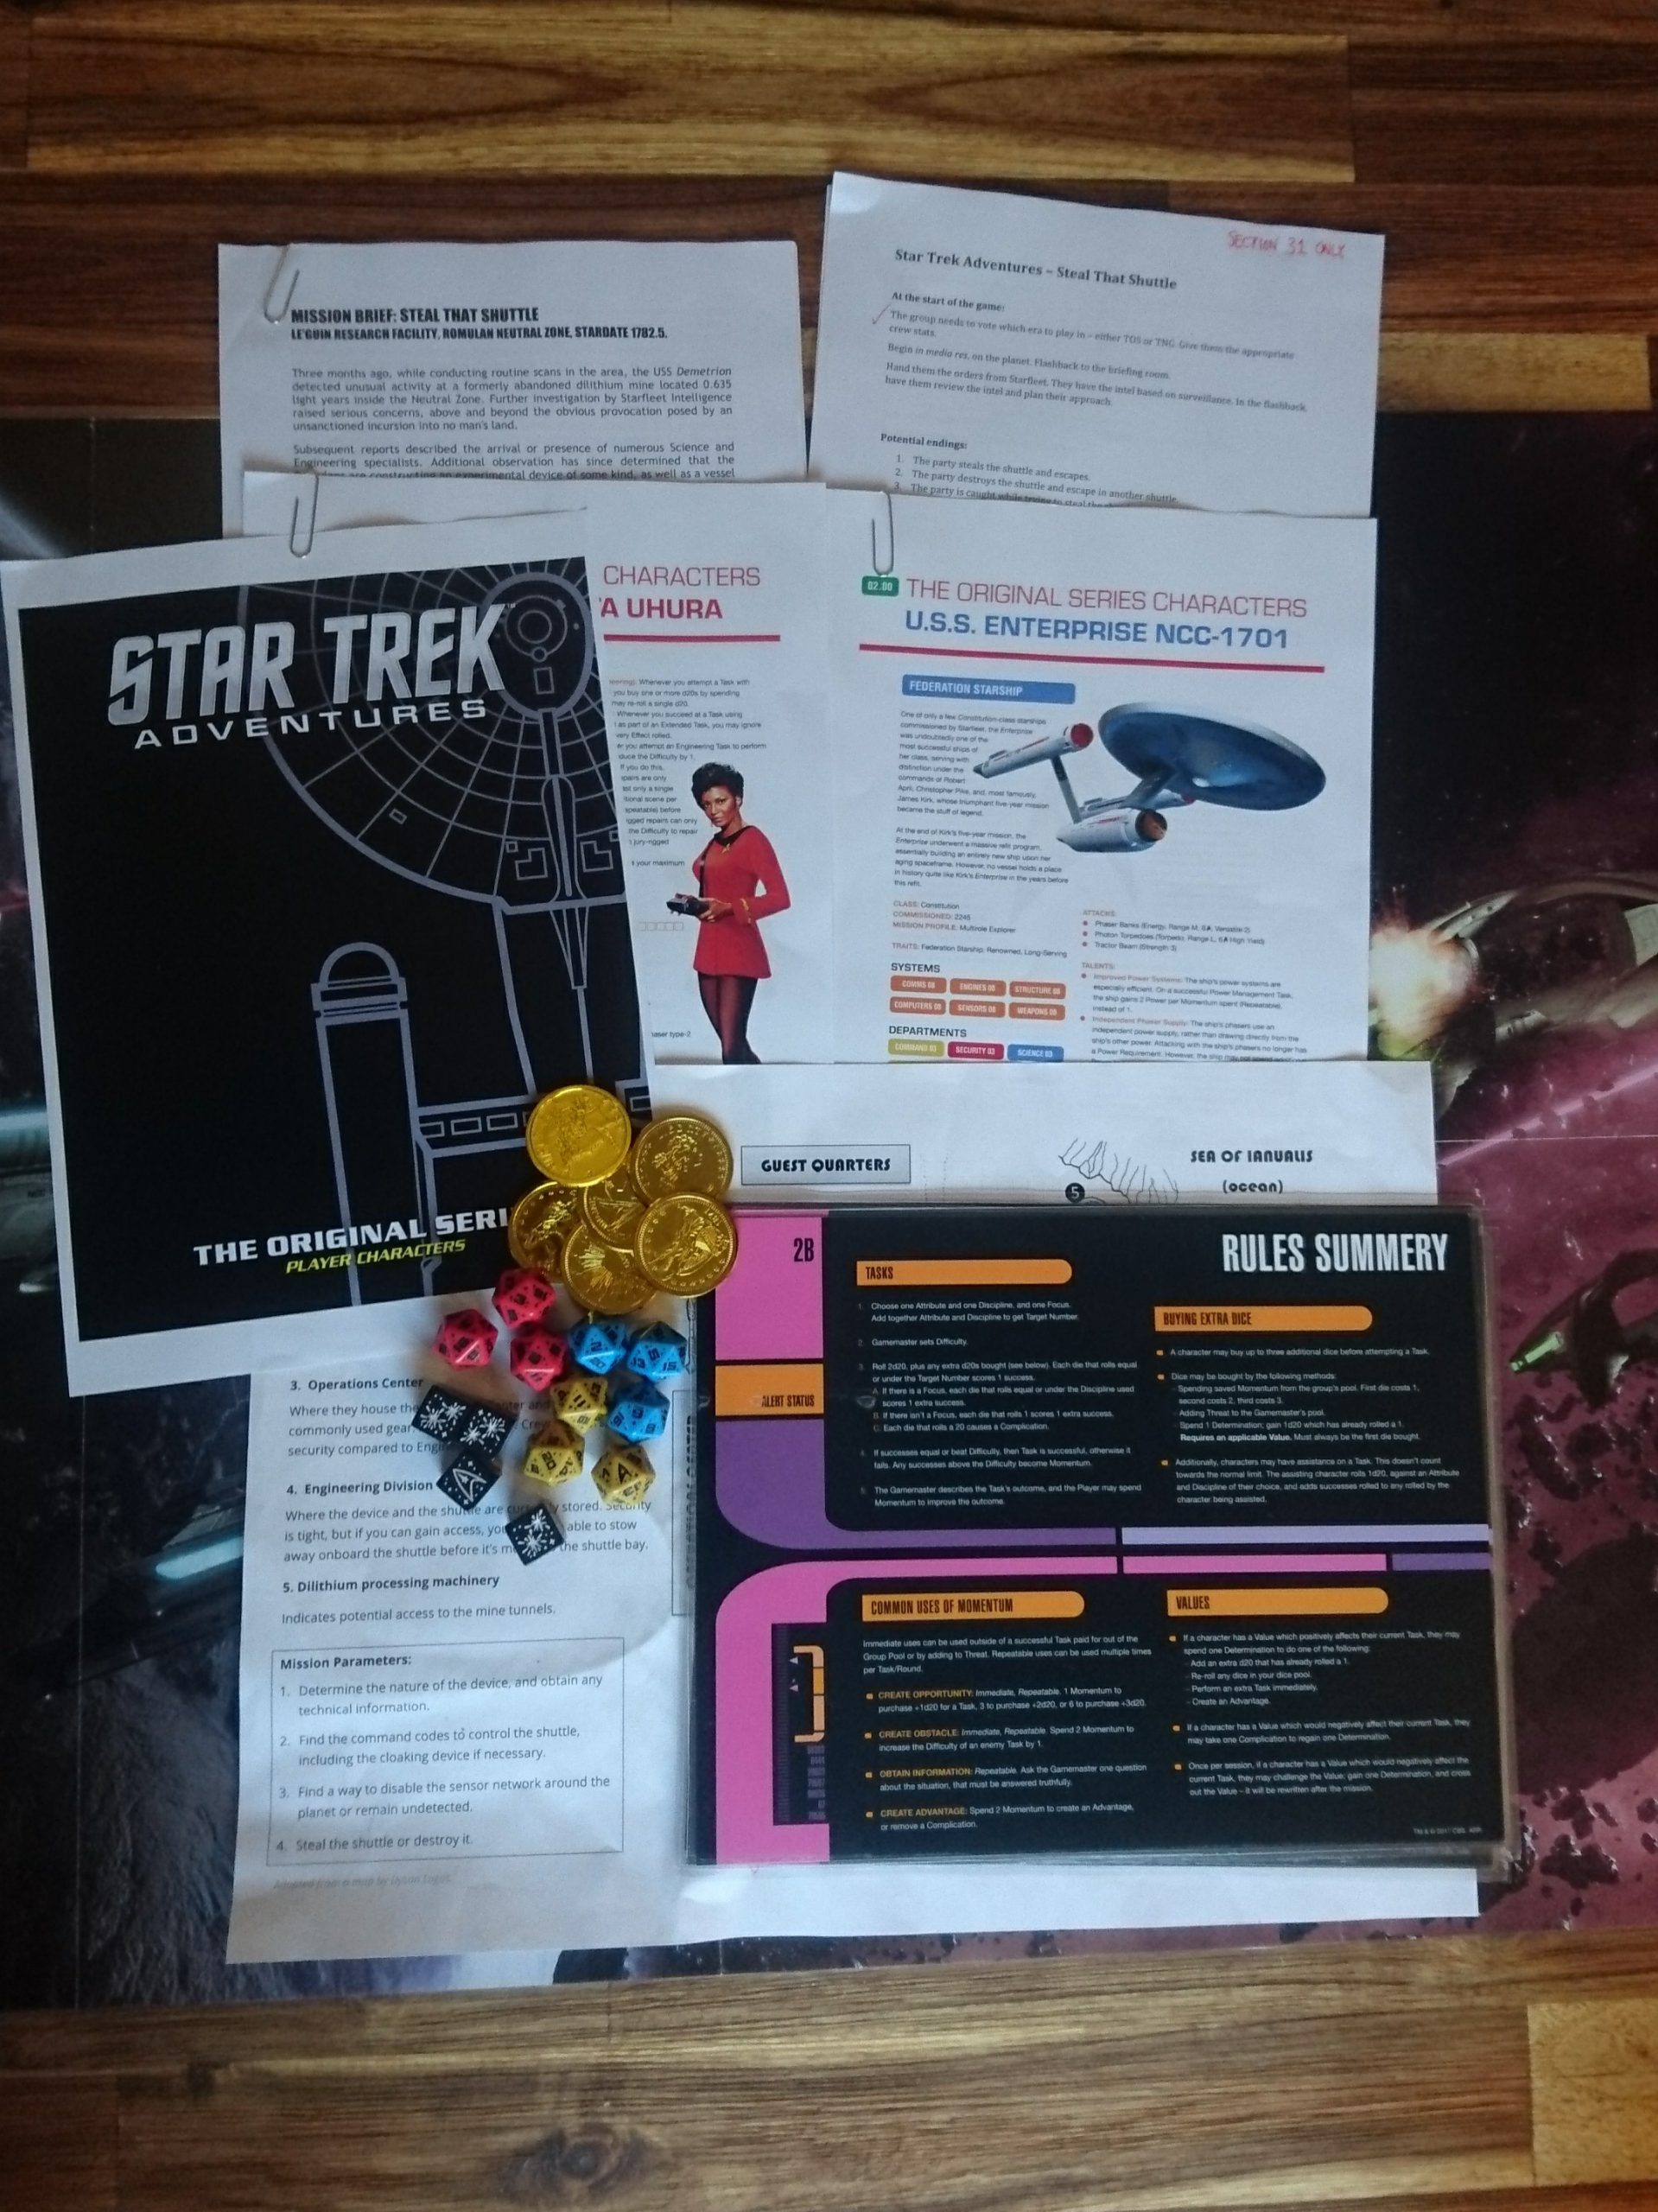 Miscellaneous items for a Star Trek Adventures game: Coins used as tokens, official dice, rules summaries, character sheets for Uhura and the Enterprise, the map, and the mission briefing for the GM.